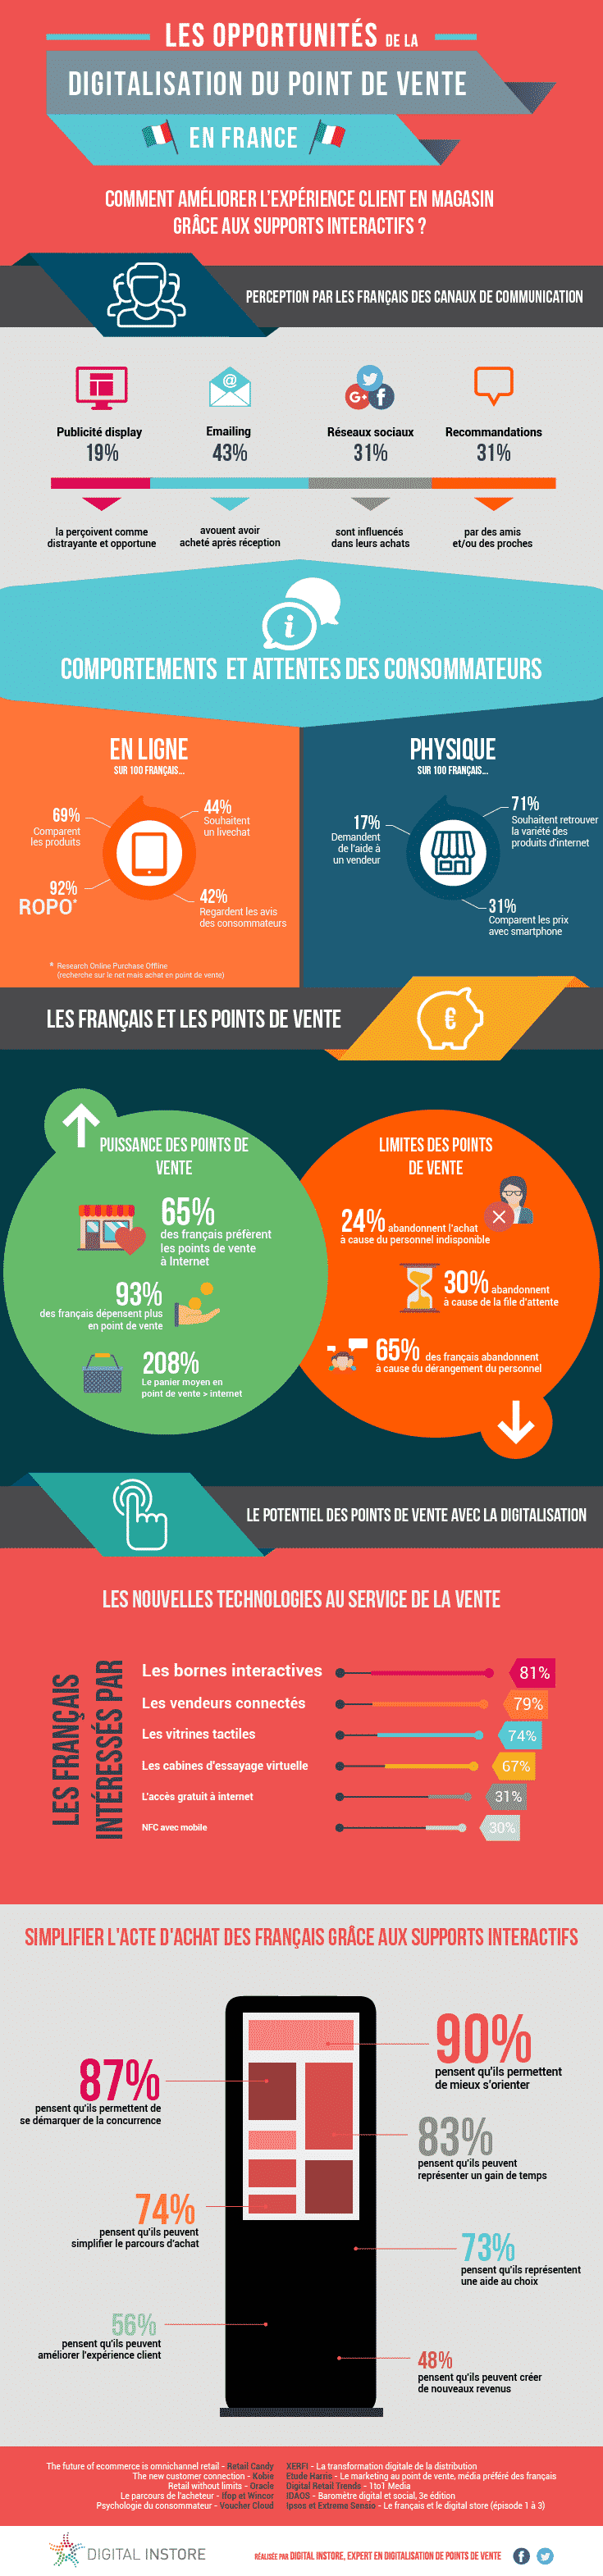 Infographie digitalisation des points de vente en France